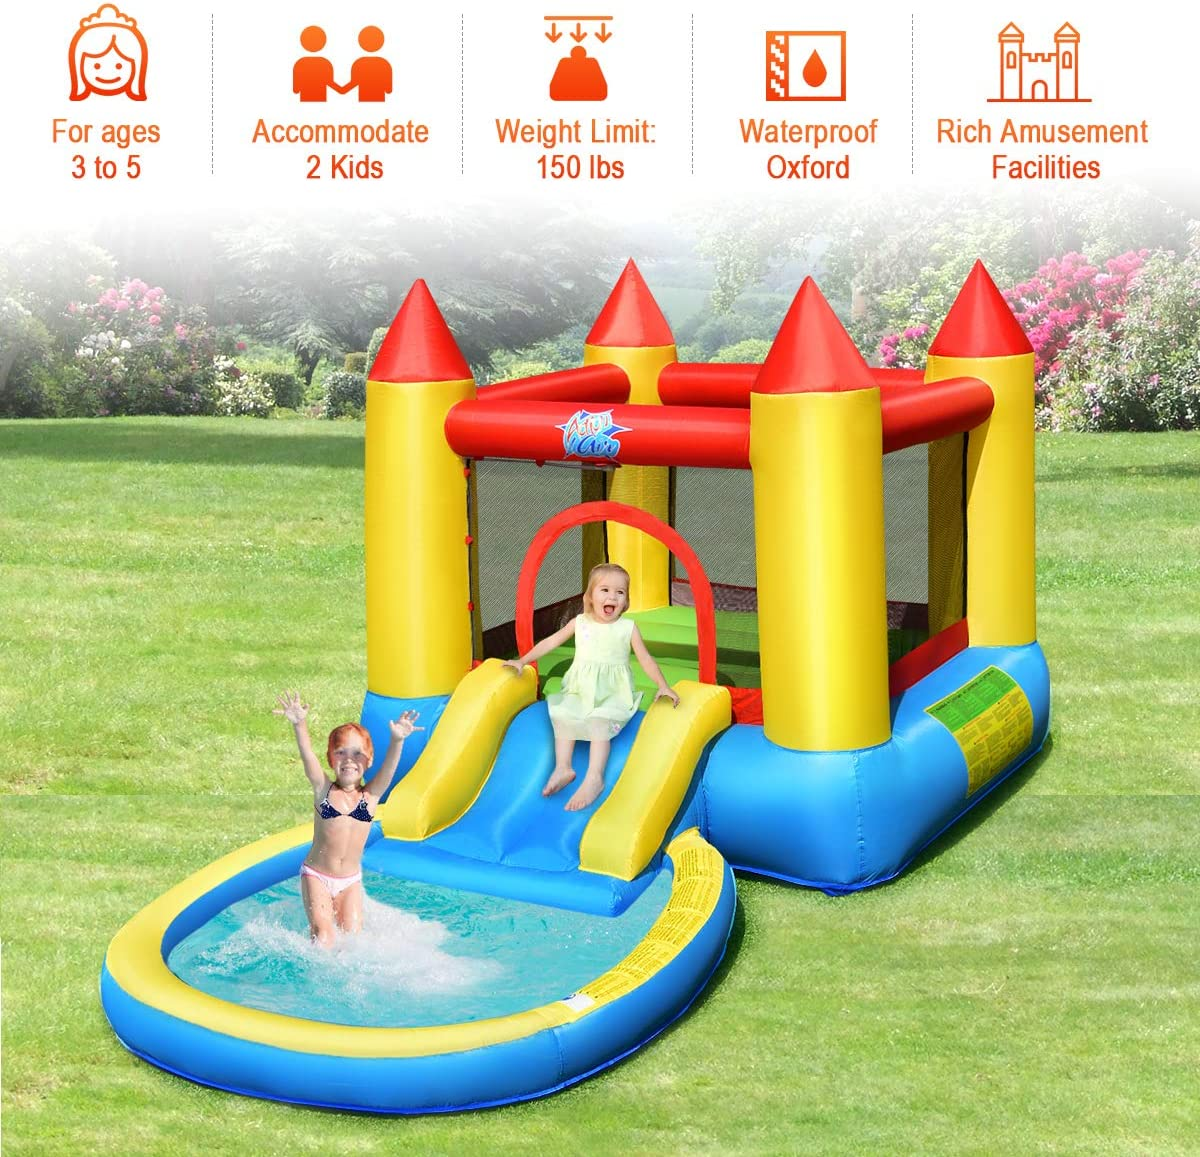 Outdoor Party Water Play Center Kids Castle Jumping Bouncer w// Water Slide /& Splash Pool Repairing Kit HONEY JOY Inflatable Bounce House Stakes Without 580W Air Including Oxford Carry Bag